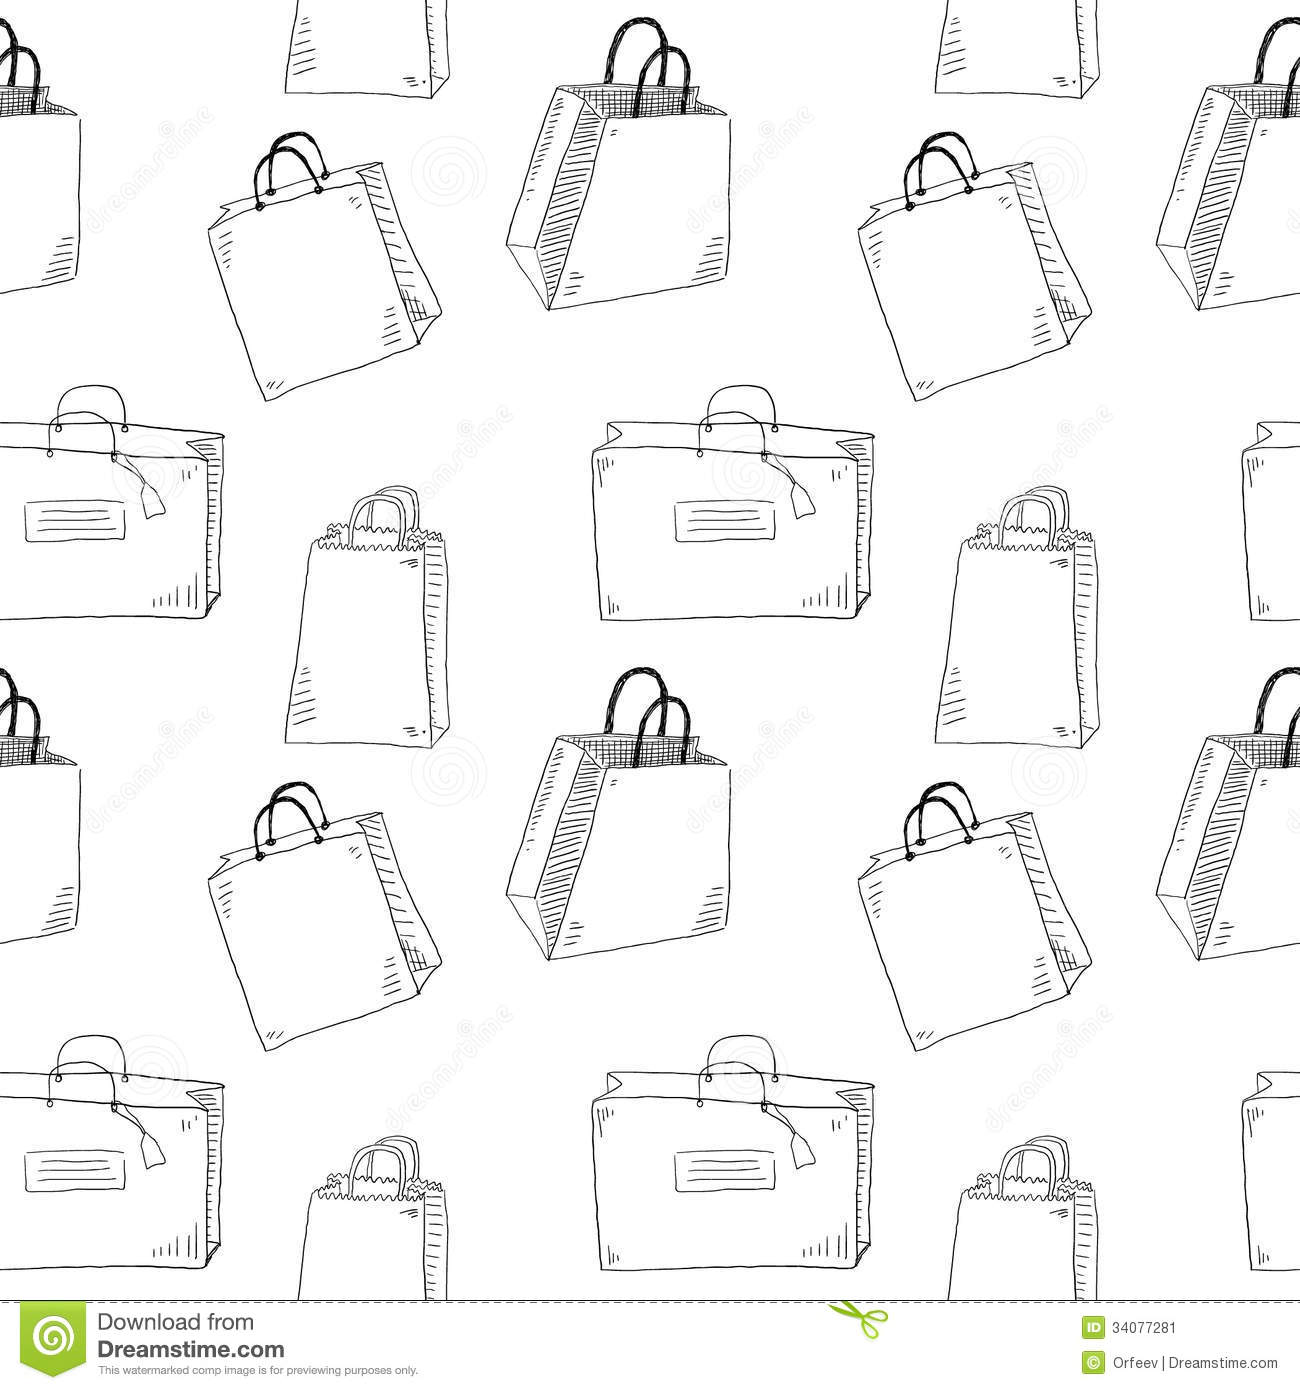 Shopping bags stock vector. Illustration of doodle